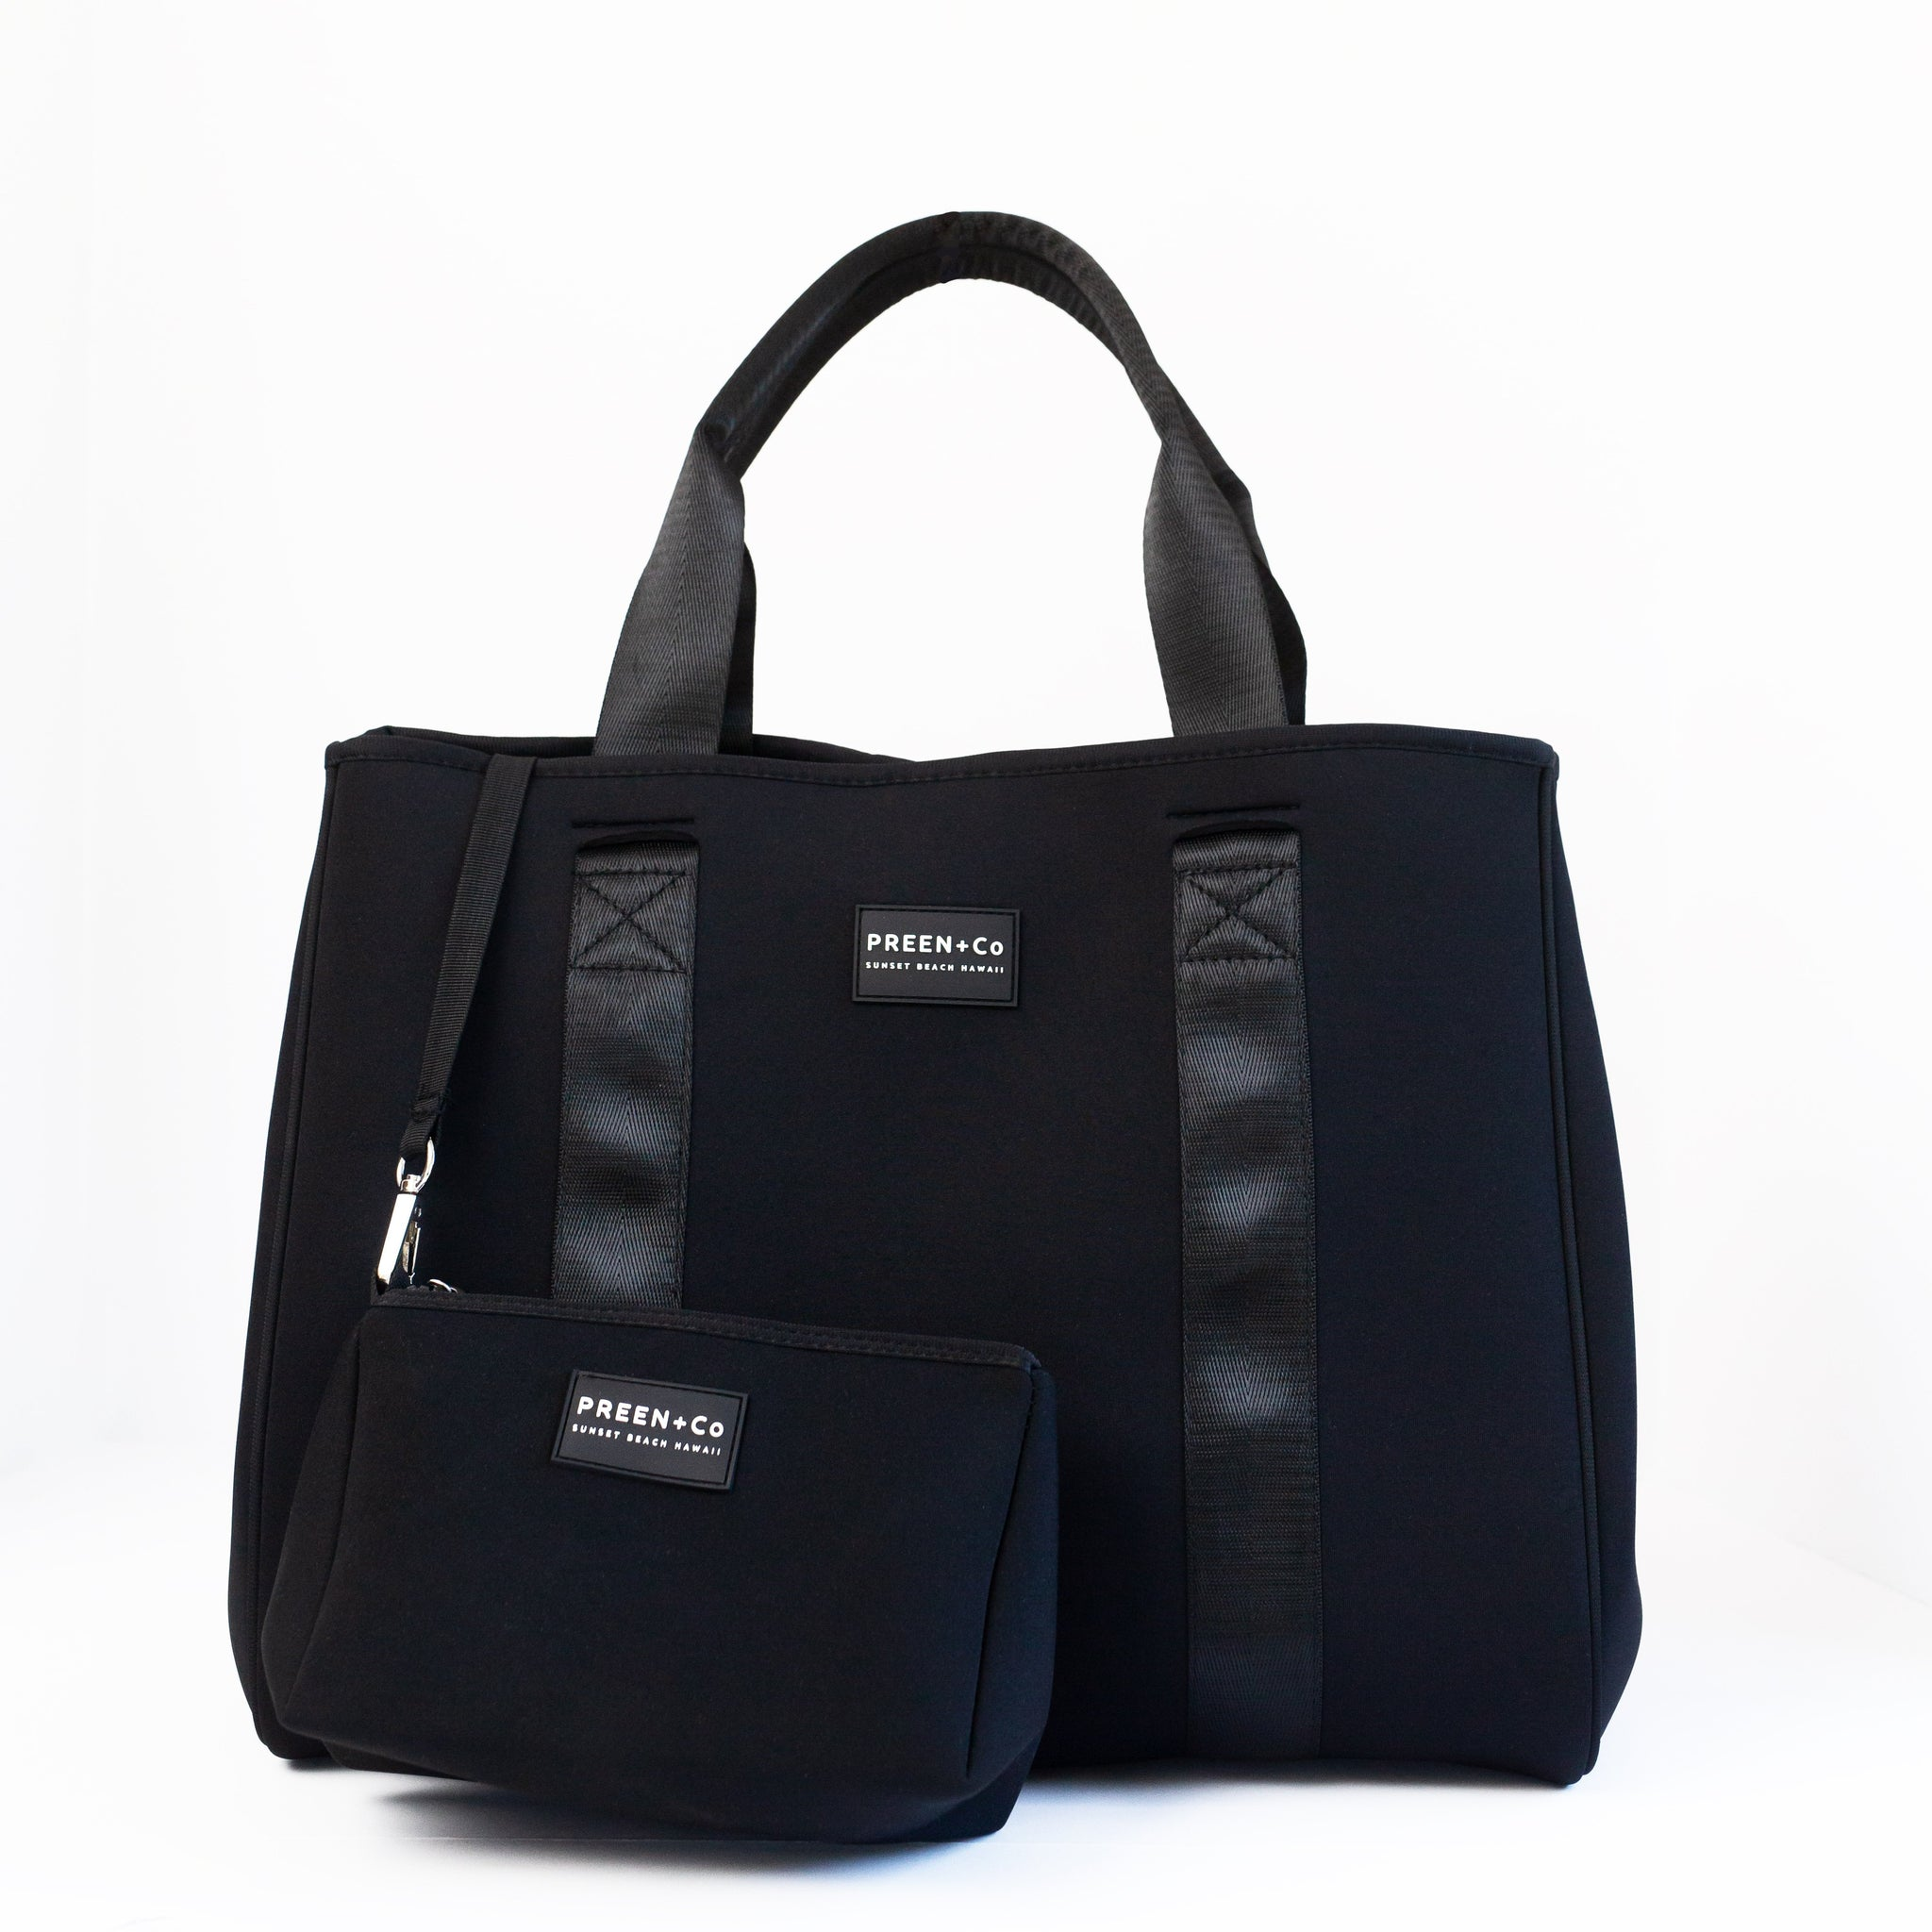 The Oahu Tote Basalt Black - PREEN&Co